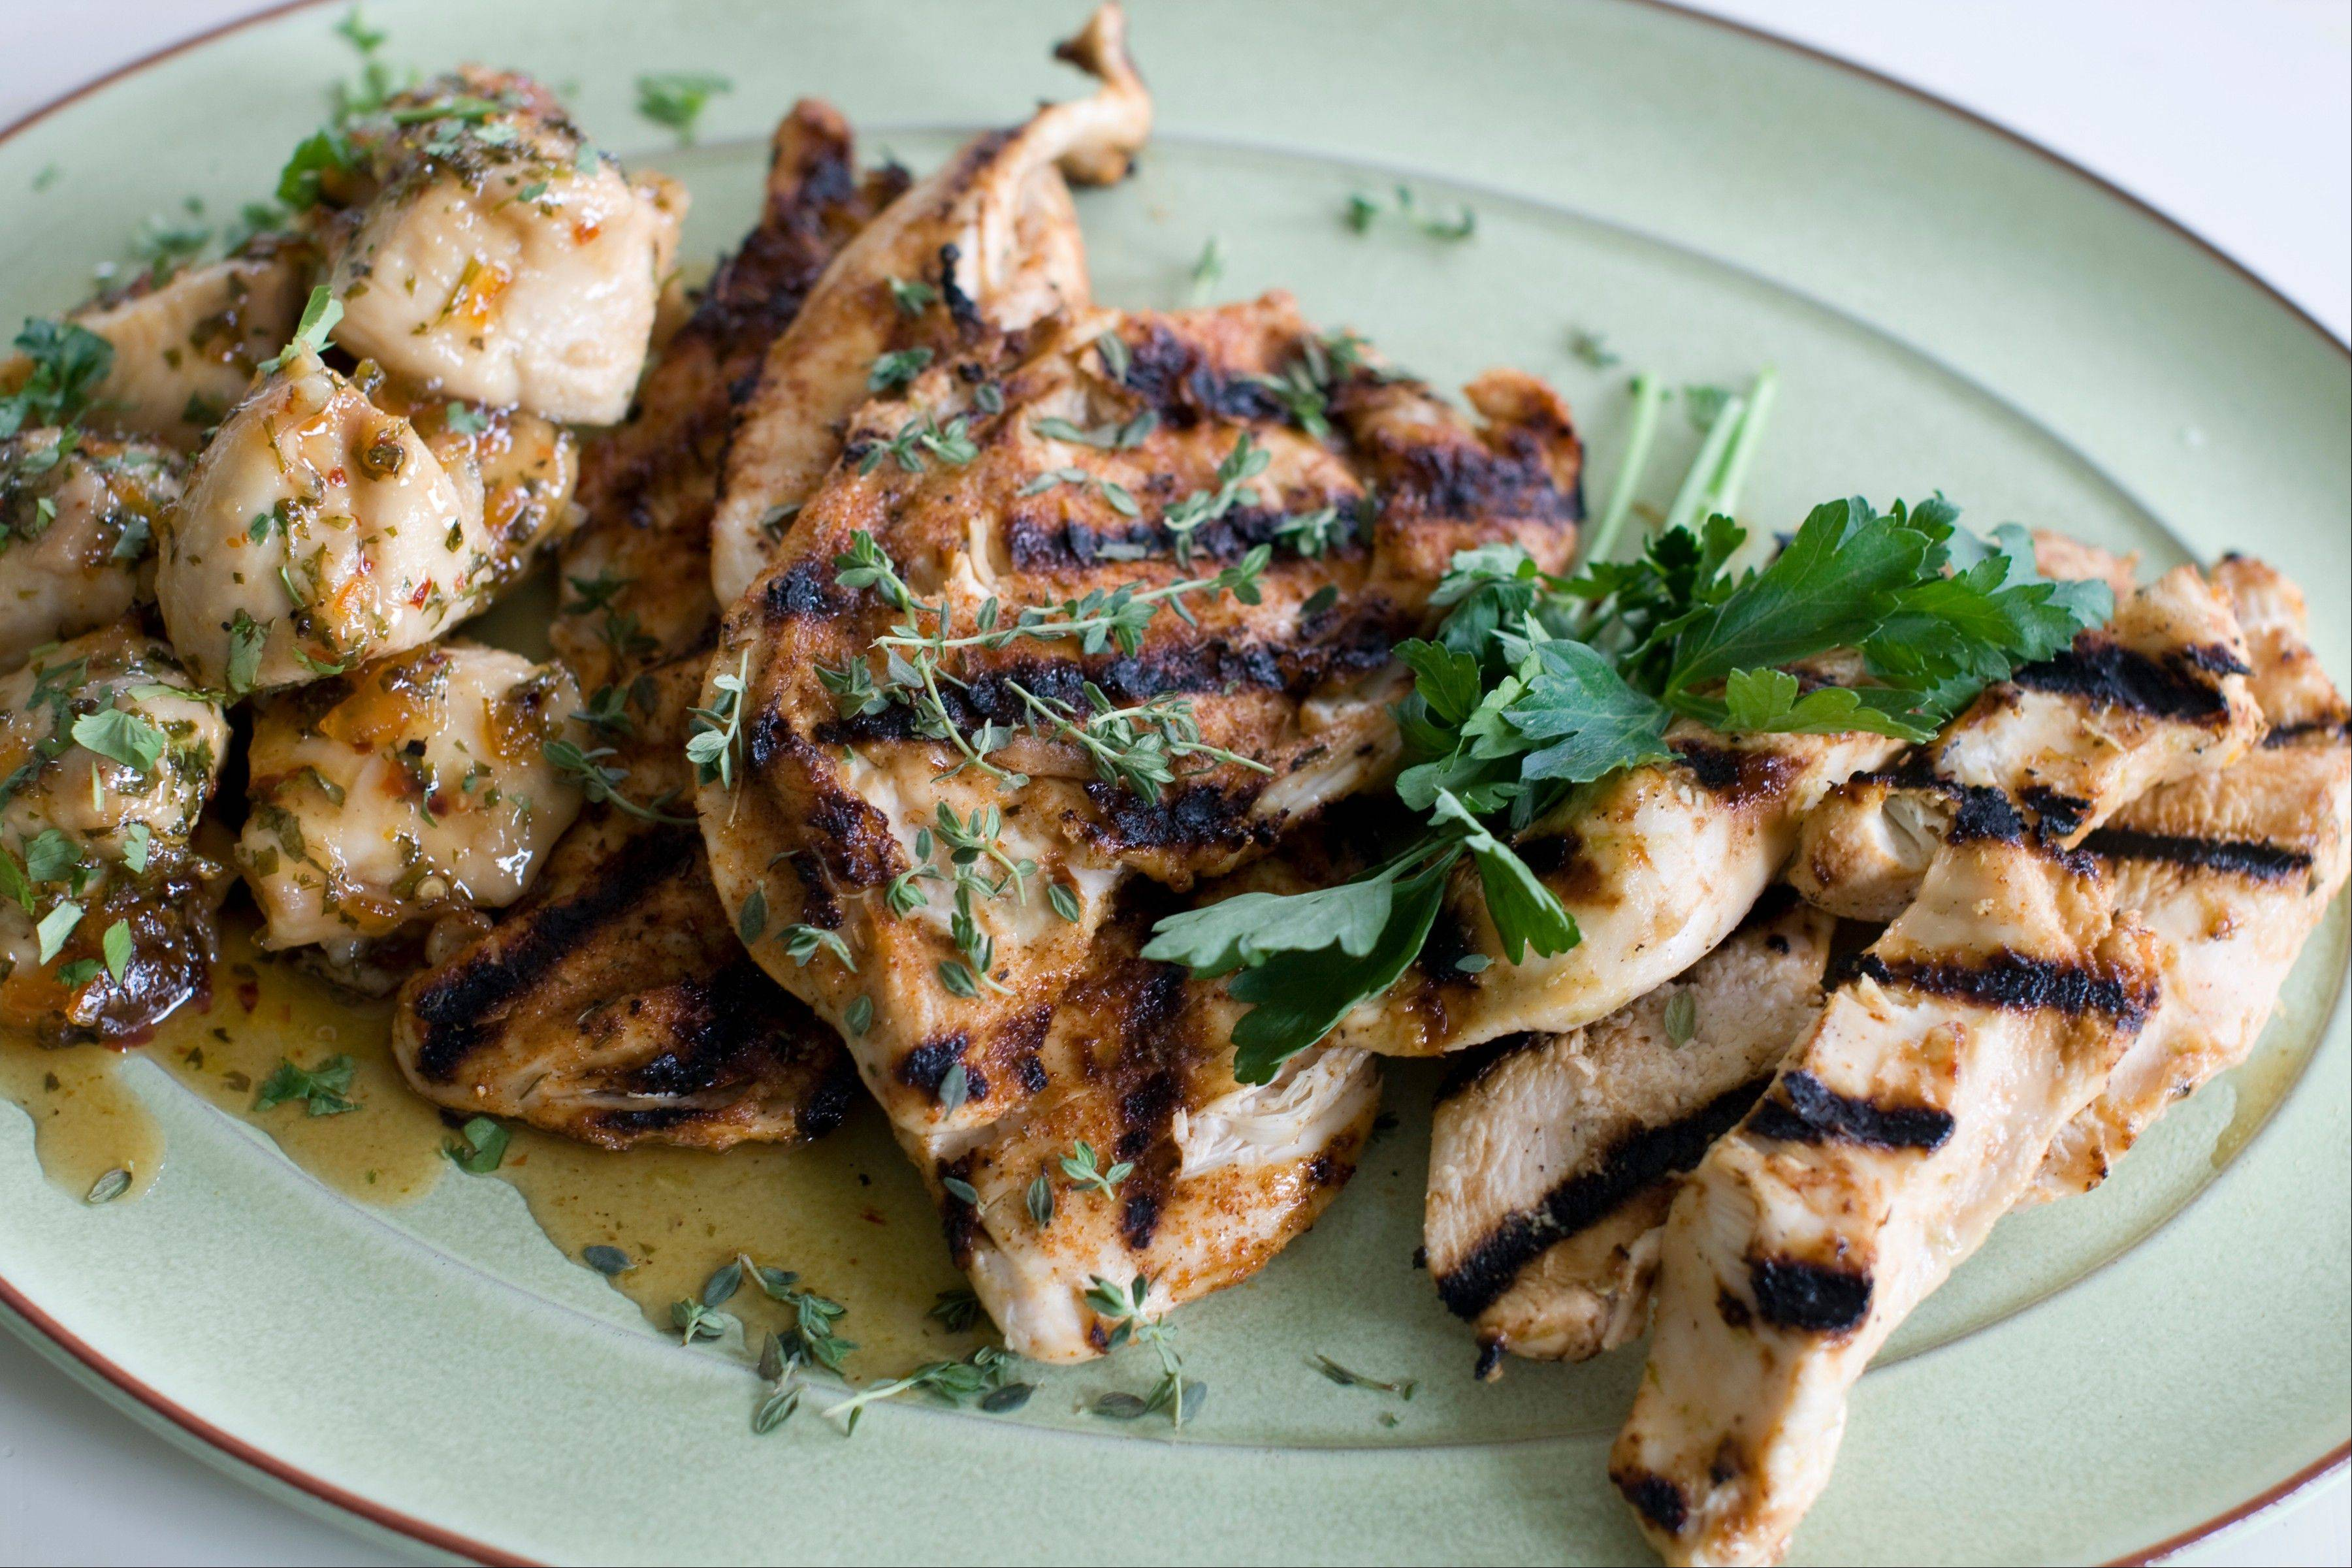 Perk up weeknight dinner with a variety of chicken preparations including, from left, a sticky orange-cilantro smothered chicken recipe, a spiced-rubbed chicken breast recipe or a recipe for miso-lime marinated chicken strips.